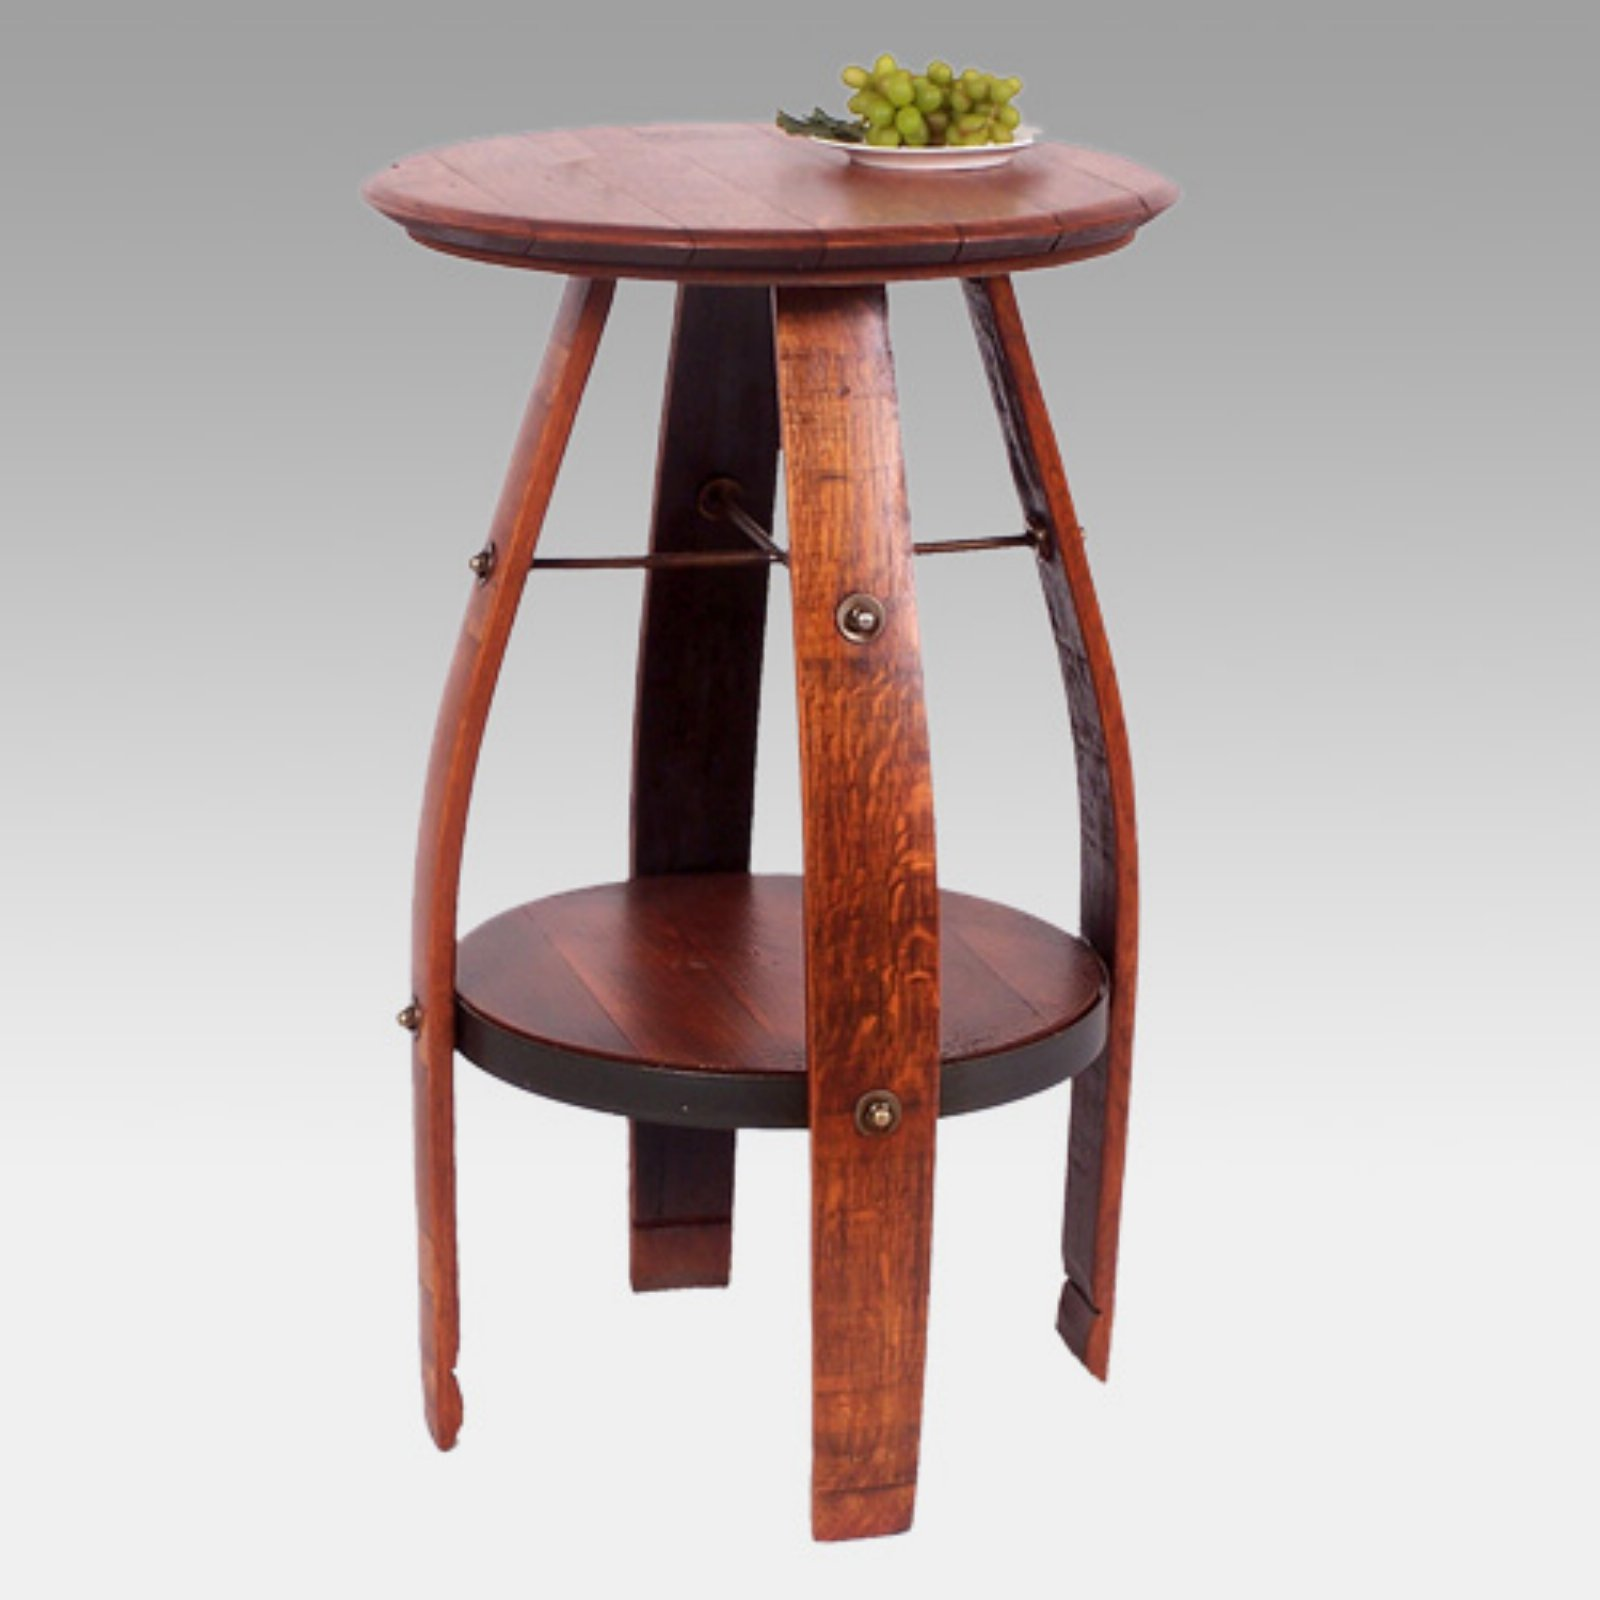 2 Day Designs Reclaimed Wine2Night Counter Height Pub Table